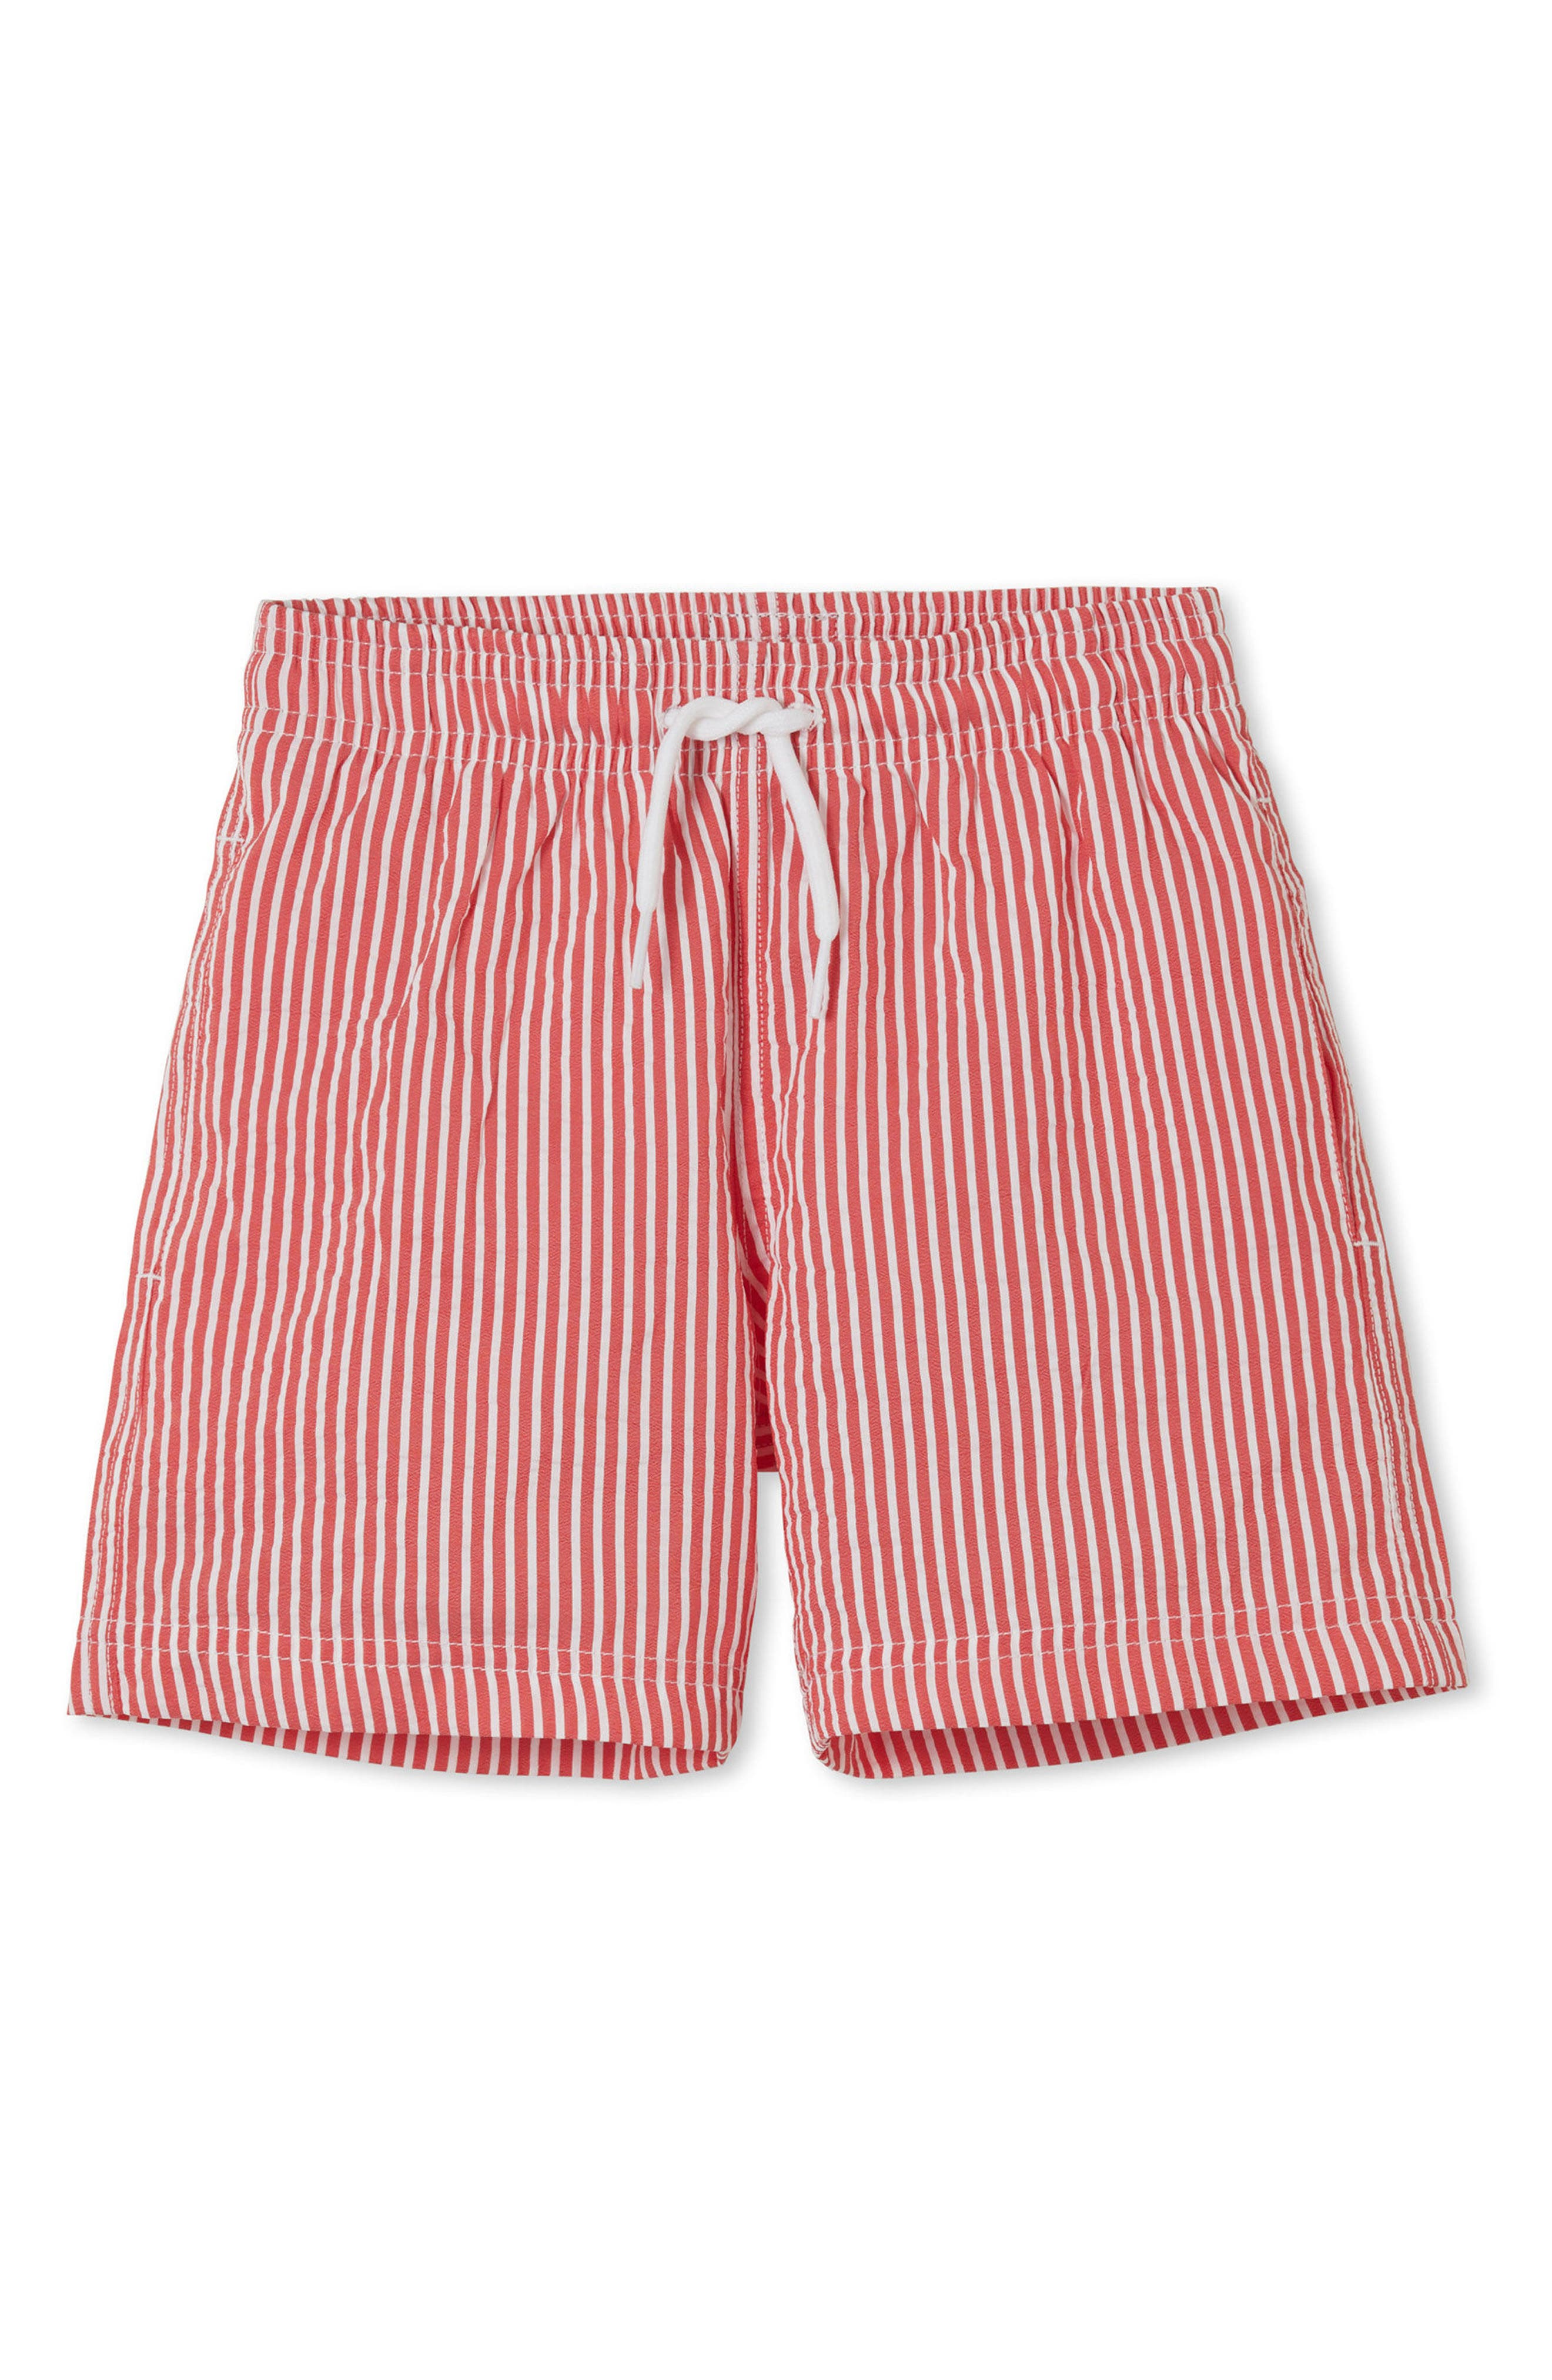 Red Stripe Swim Trunks,                             Main thumbnail 1, color,                             Red